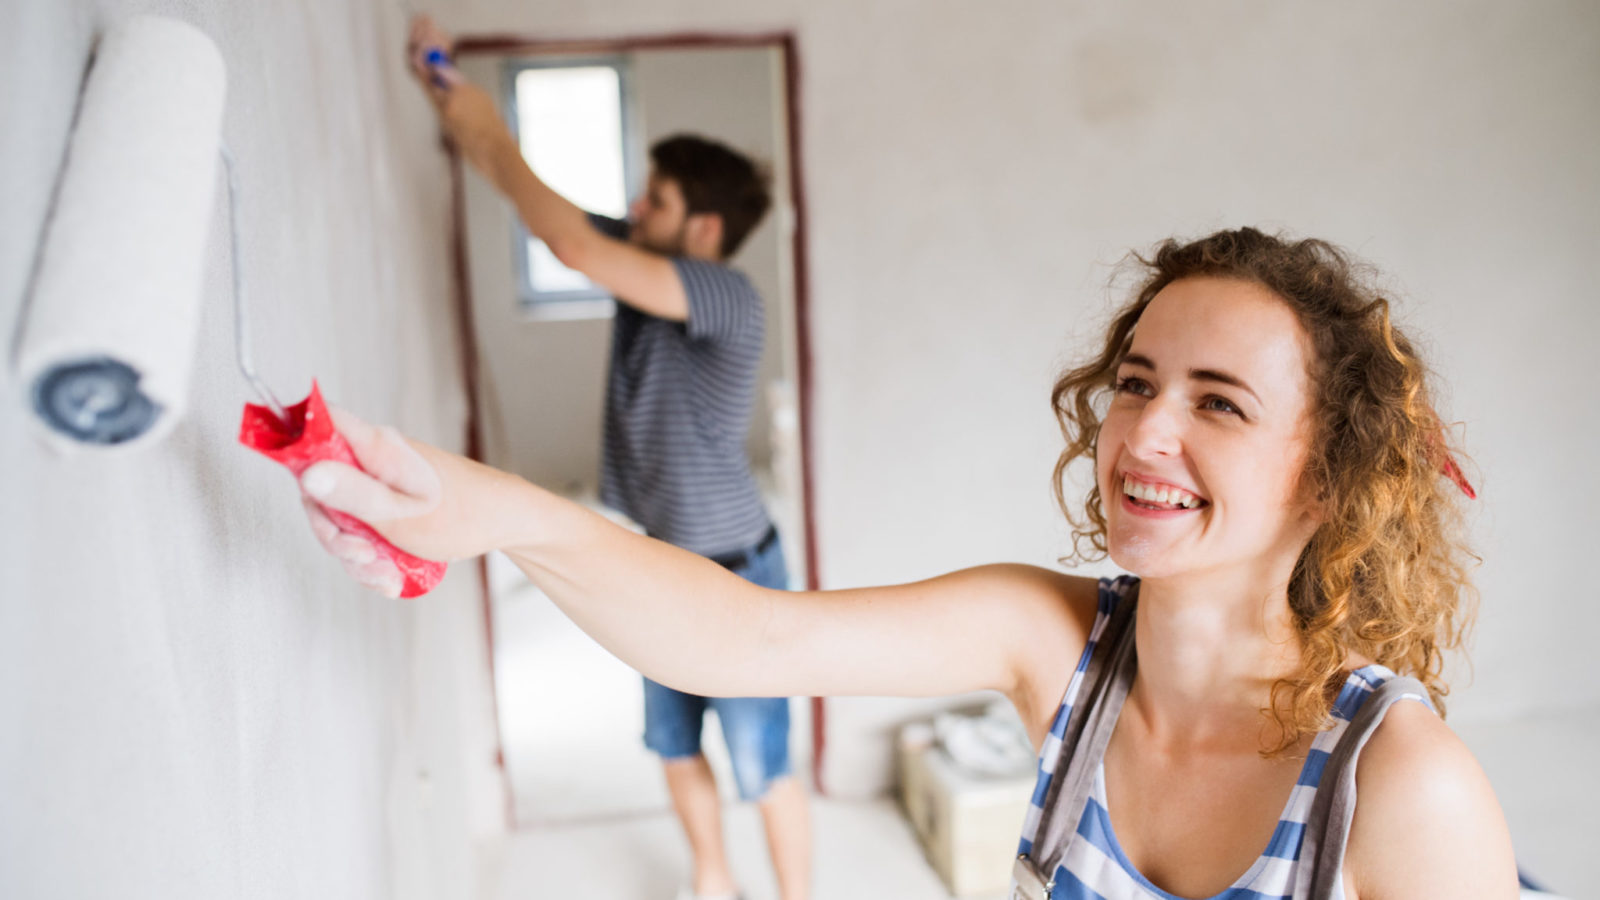 Young couple painting walls in their house